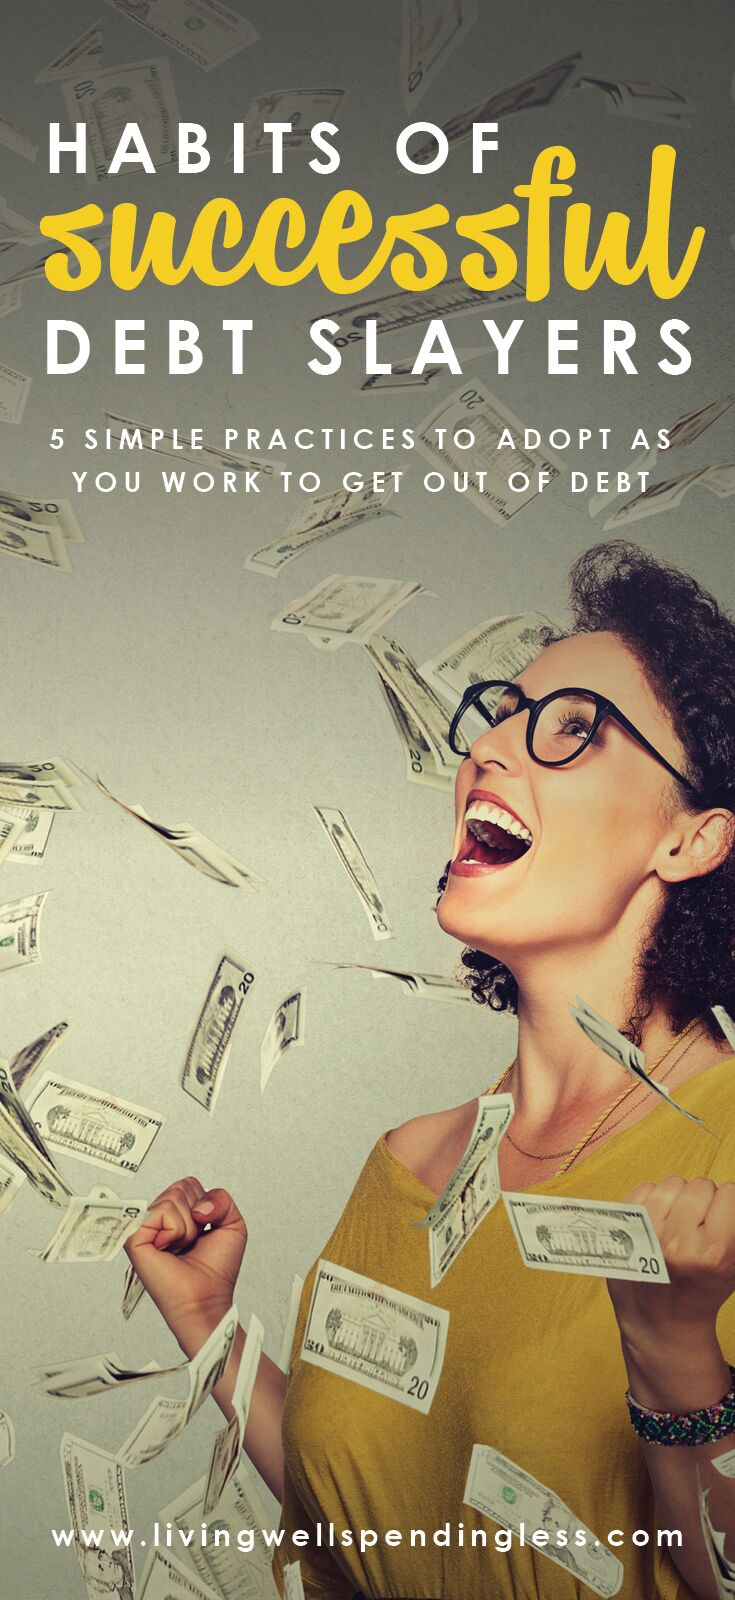 Follow these 5 habits of successful debt slayers and begin on the road to financial freedom!